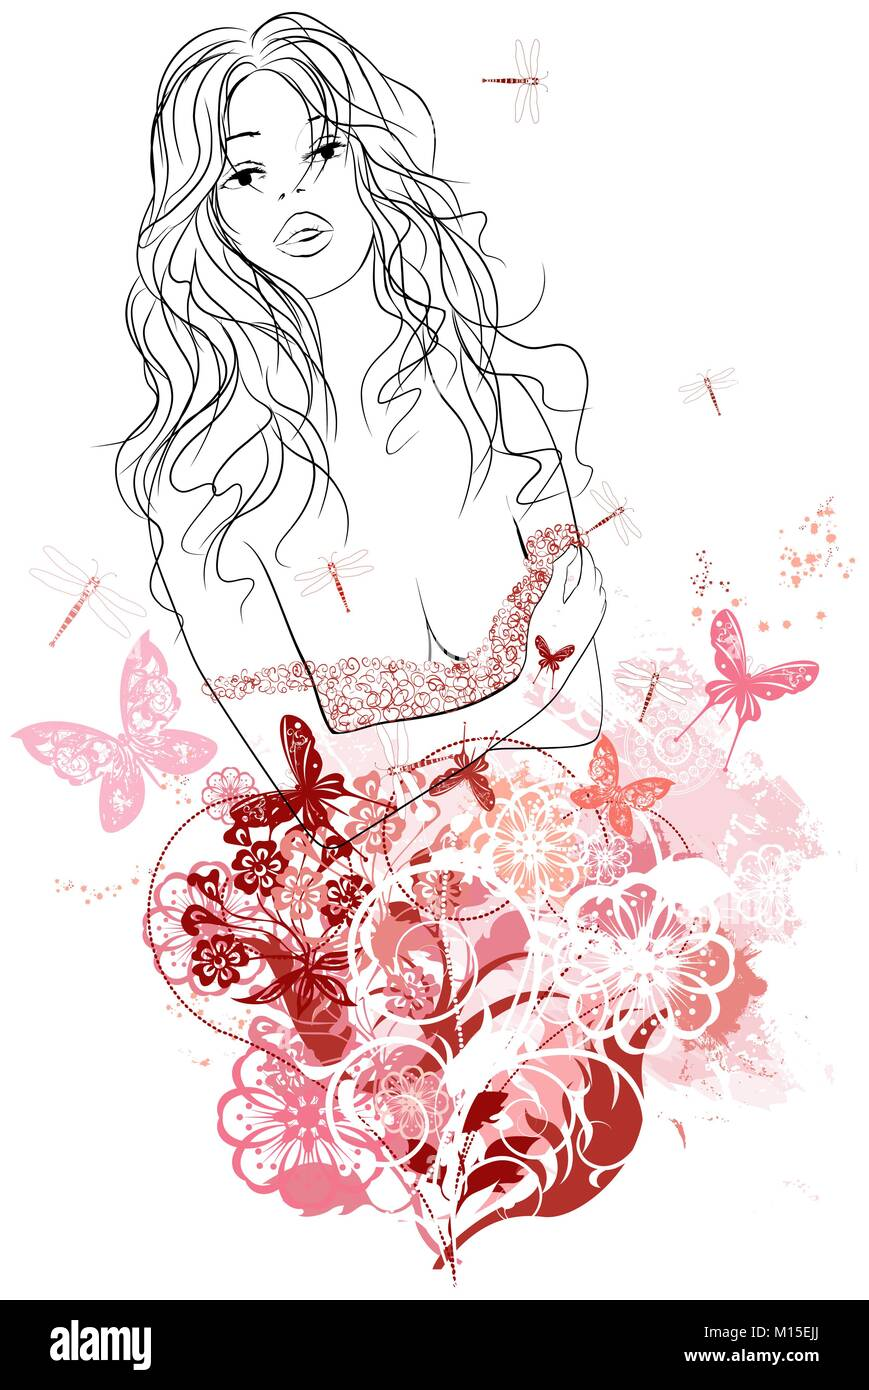 Vector Illustration Of A Woman Portrait In Grunge Floral Background